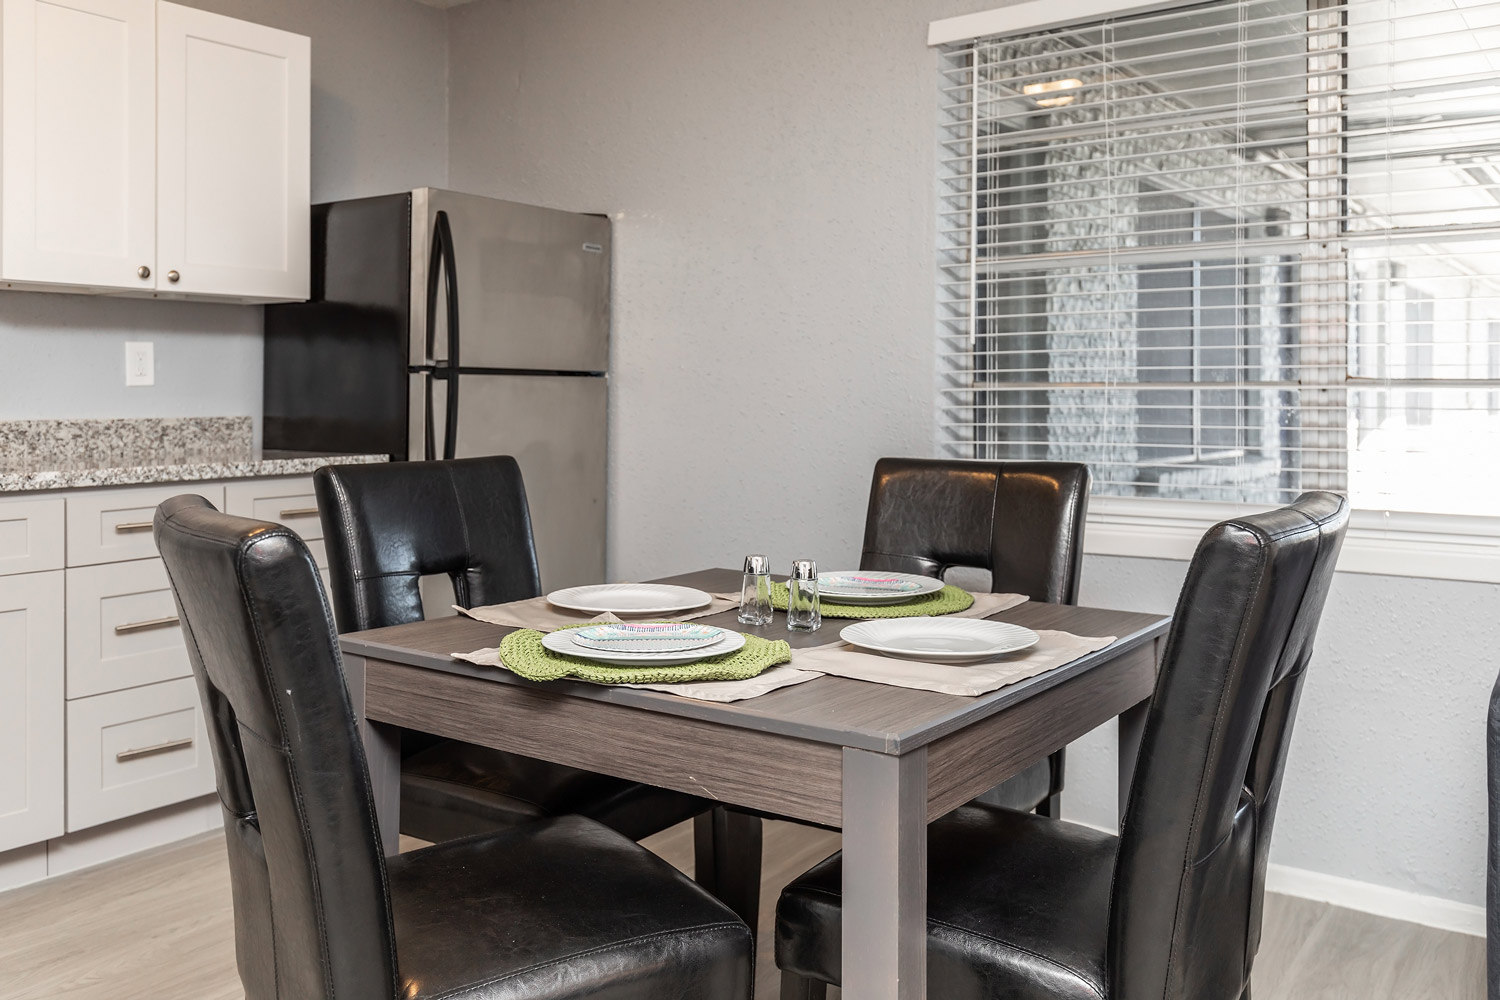 Dining Area at The Five Points at Texas Apartments in Texas City, Texas